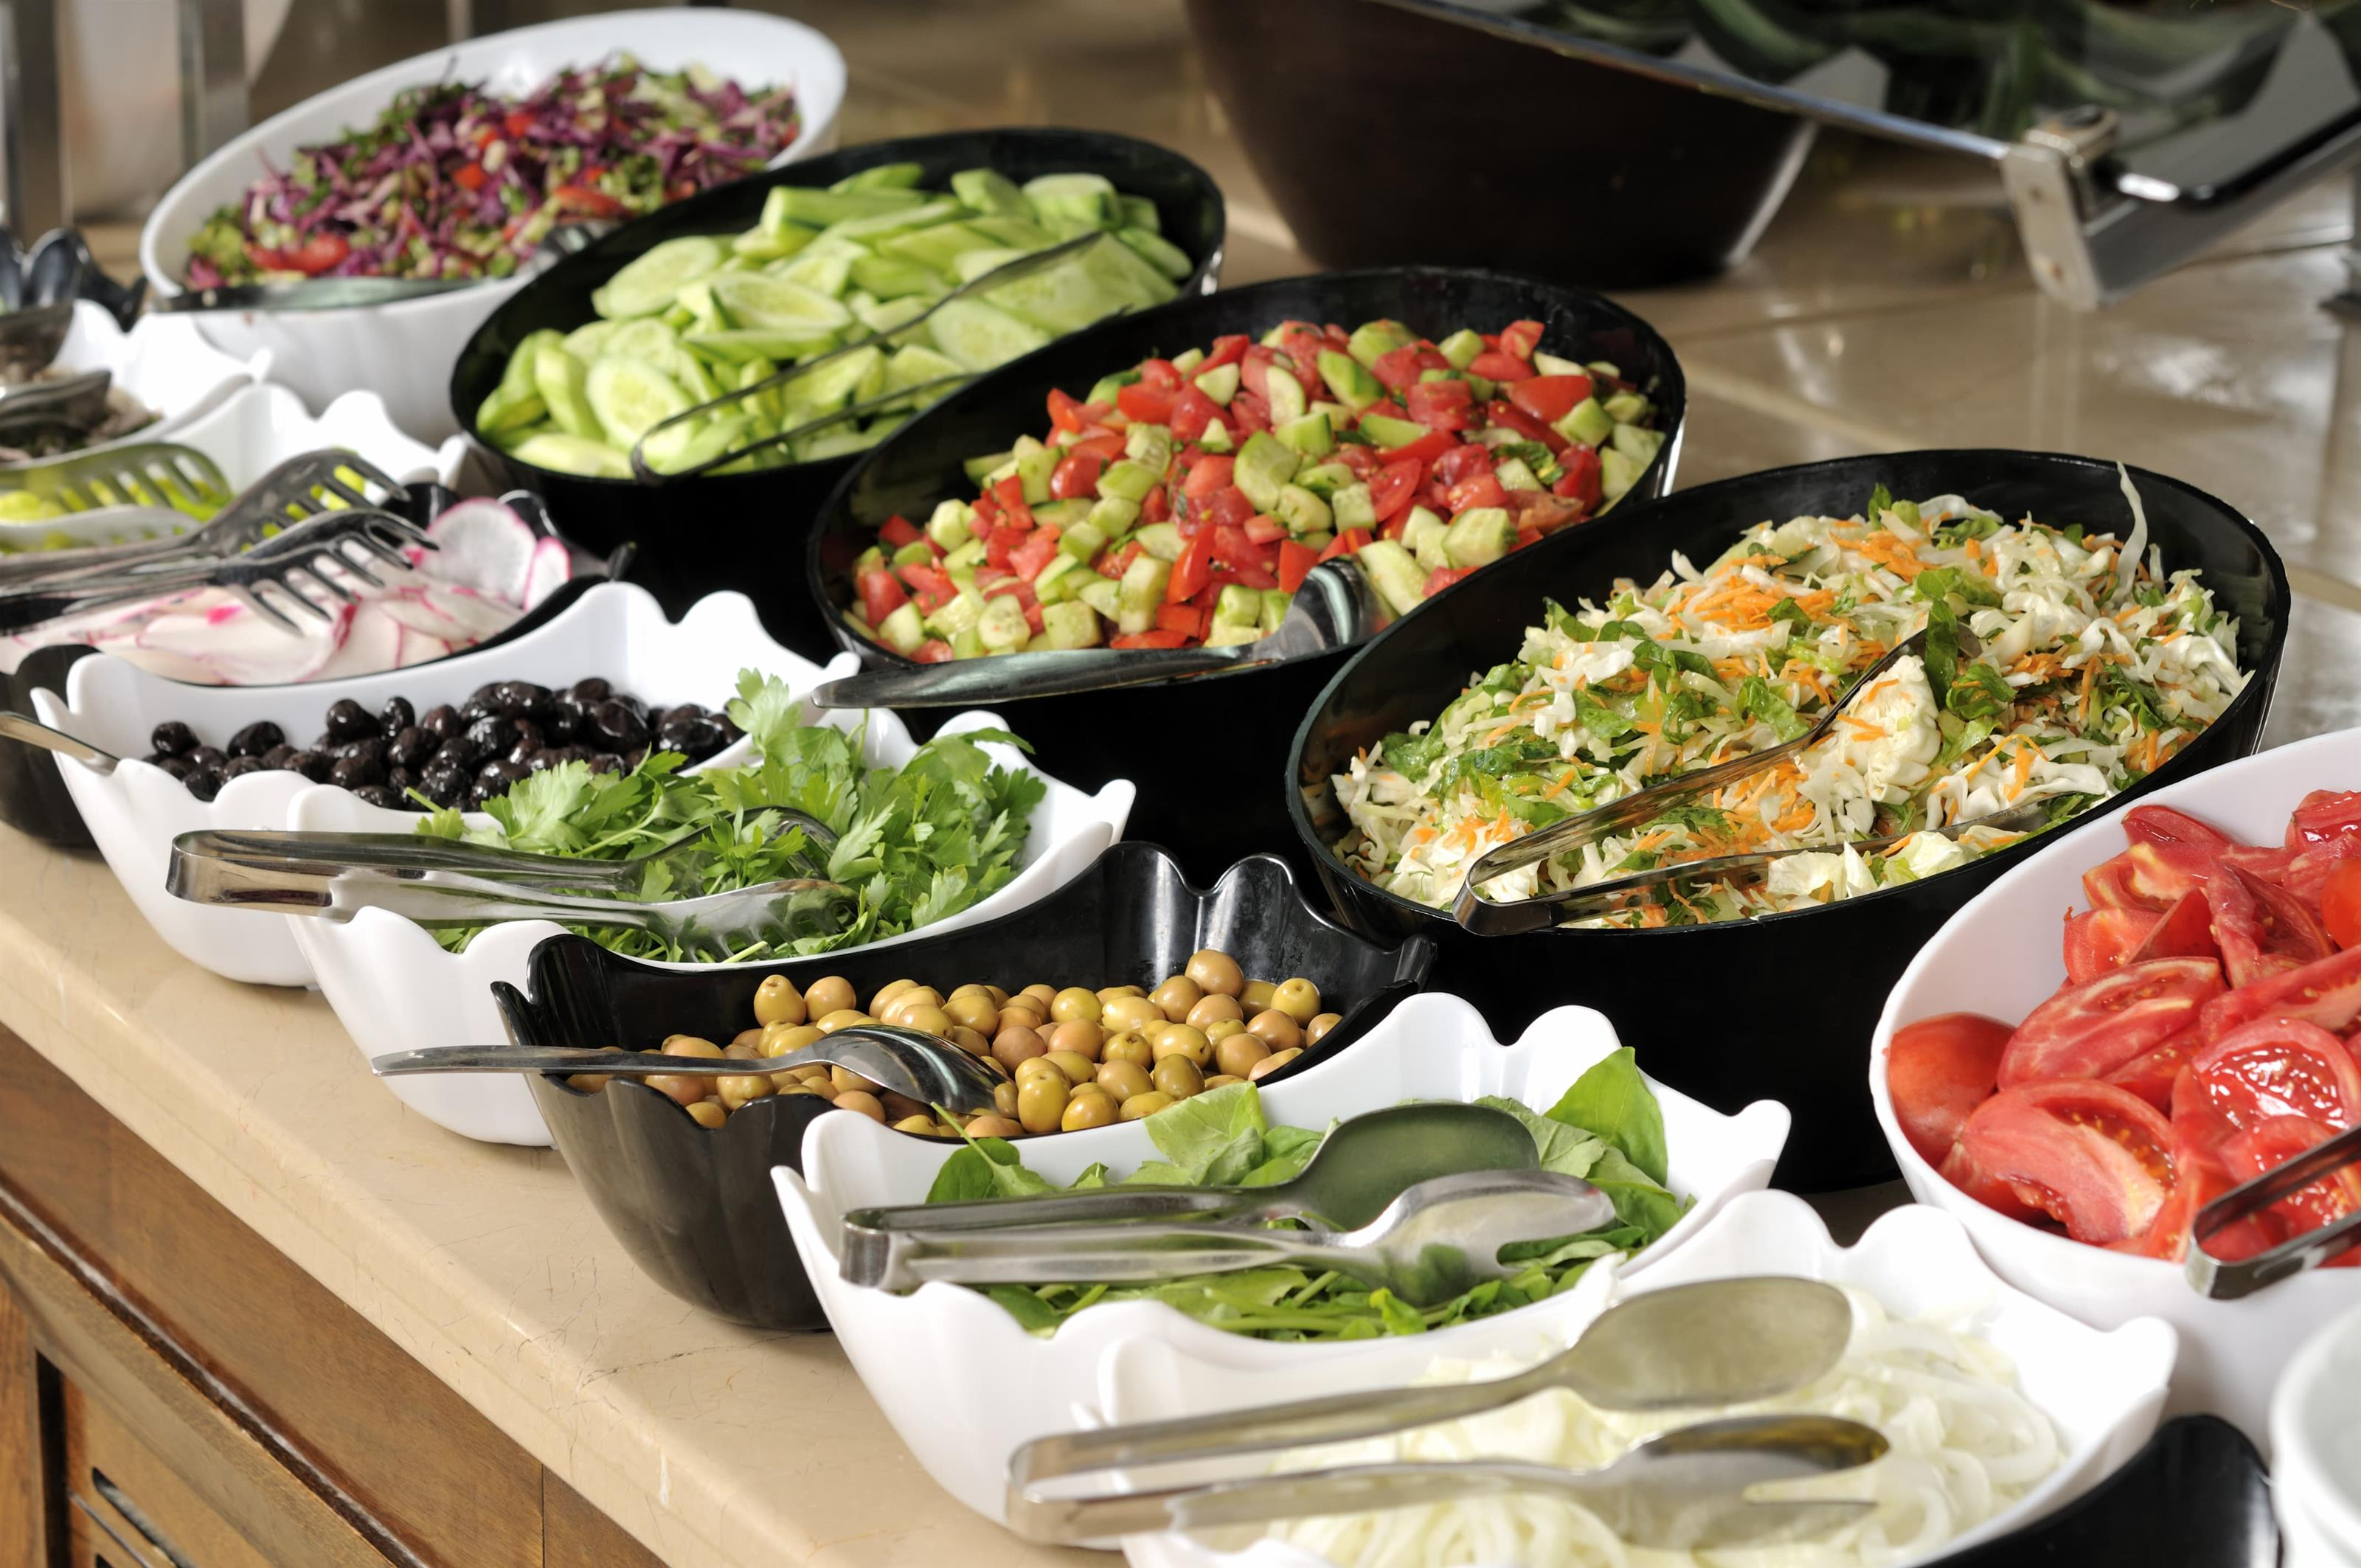 salad bar with bowls of lettuce, olives, cucumber. tomato, spinach, and onion